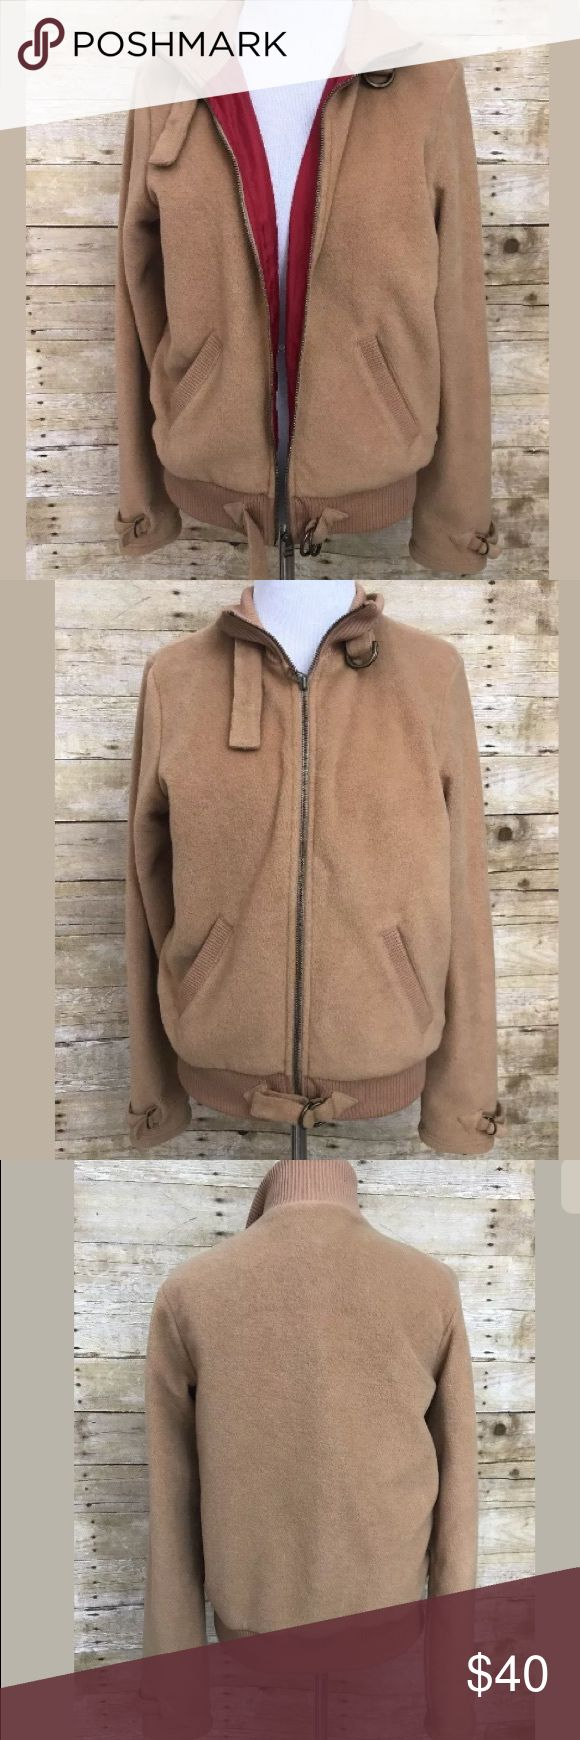 "Tommy Jeans Camel Fleece Zip Up Jacket SZ L Comfortable fleece Camel tan colored zip up Moto style coat jacket. Maybe junior sizing as measurements seem small for a Women's large. measures 18"" Bust and 22.5"" length. Excellent condition. Tommy Hilfiger Jackets & Coats"